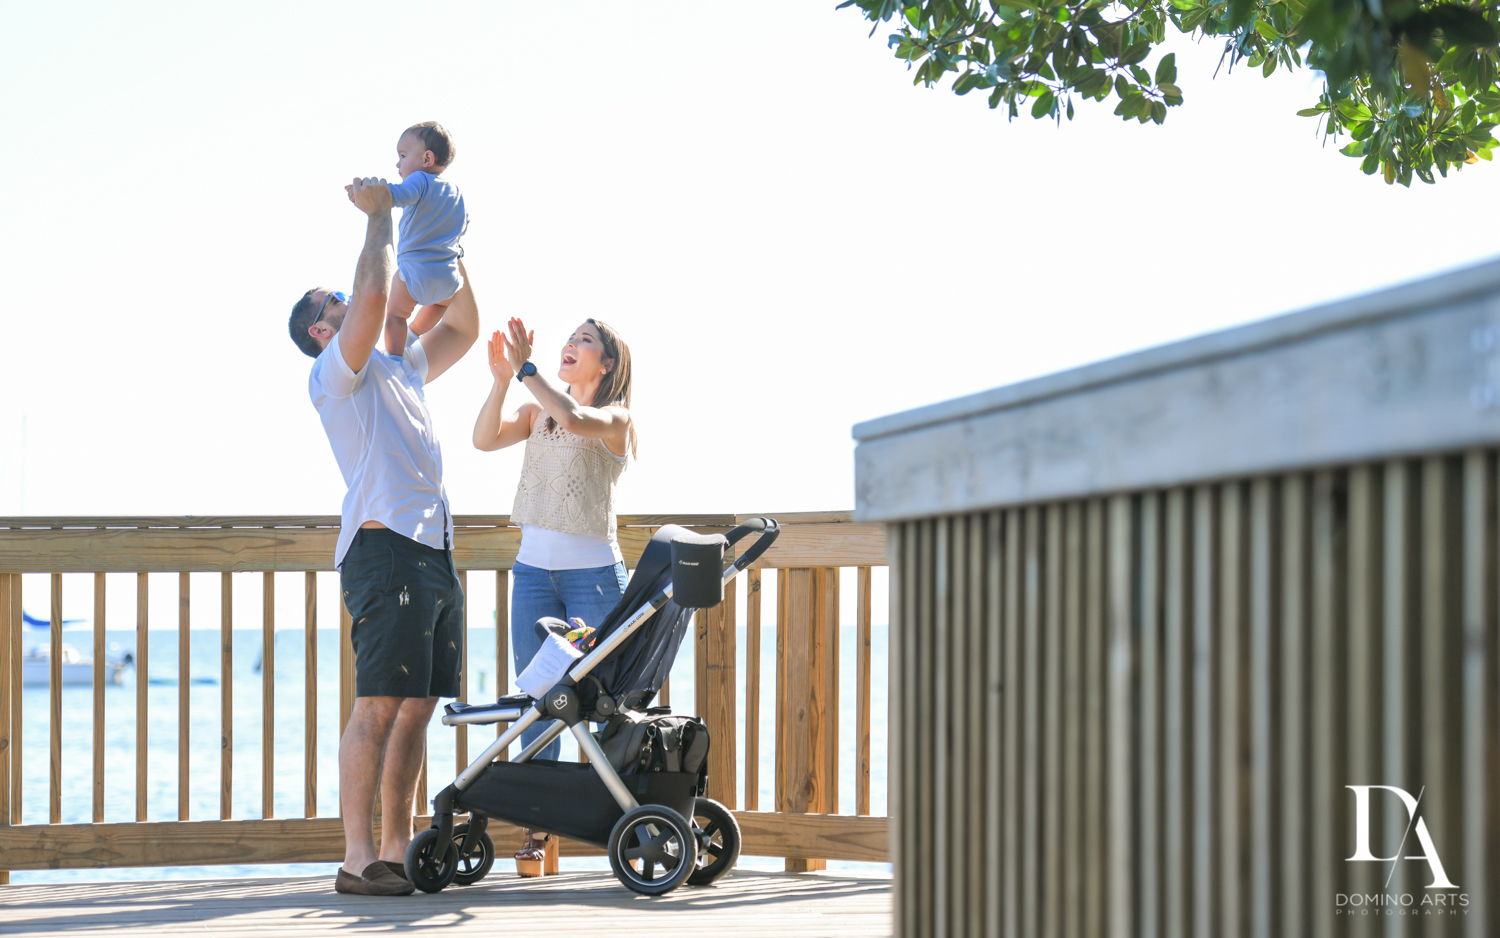 Urban baby Photo Session in Coral Gables by Domino Arts Photography